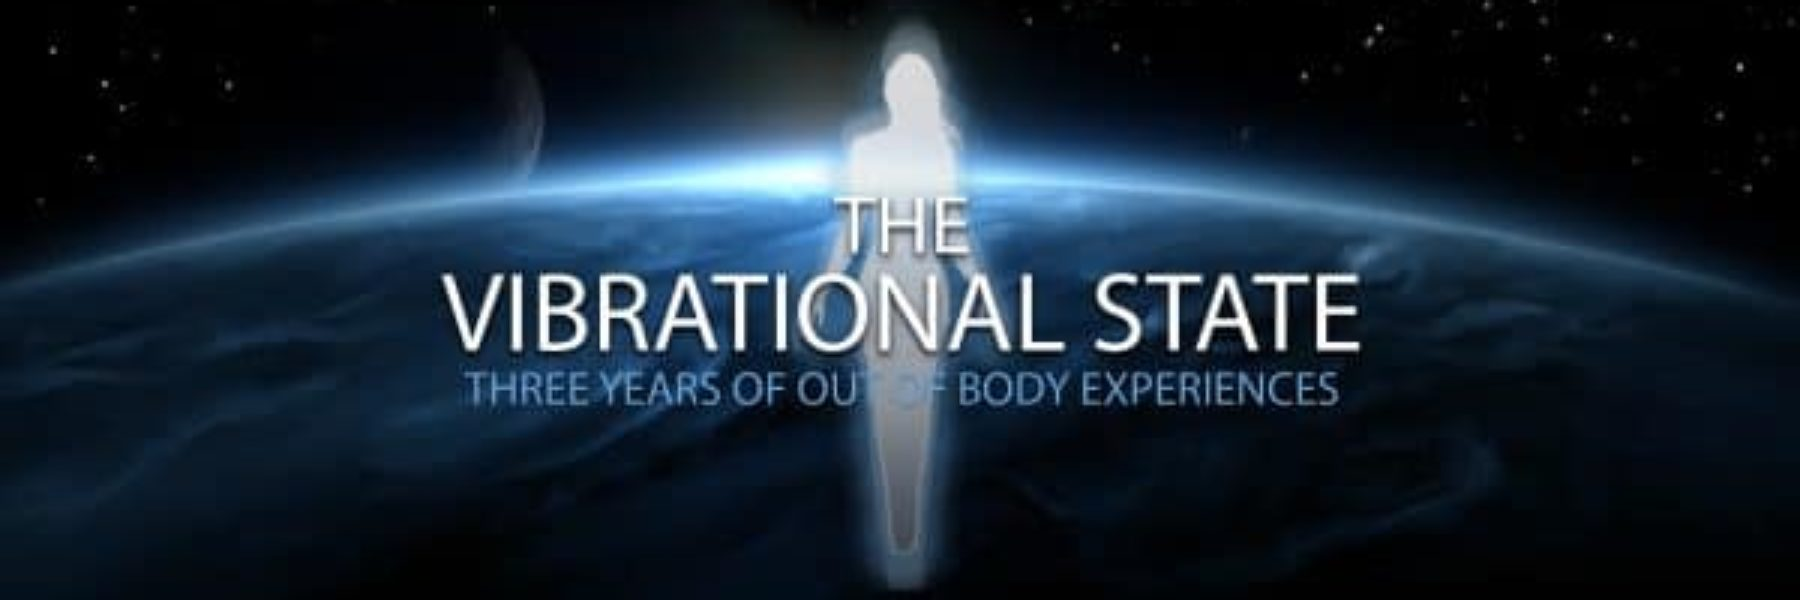 The Vibrational State